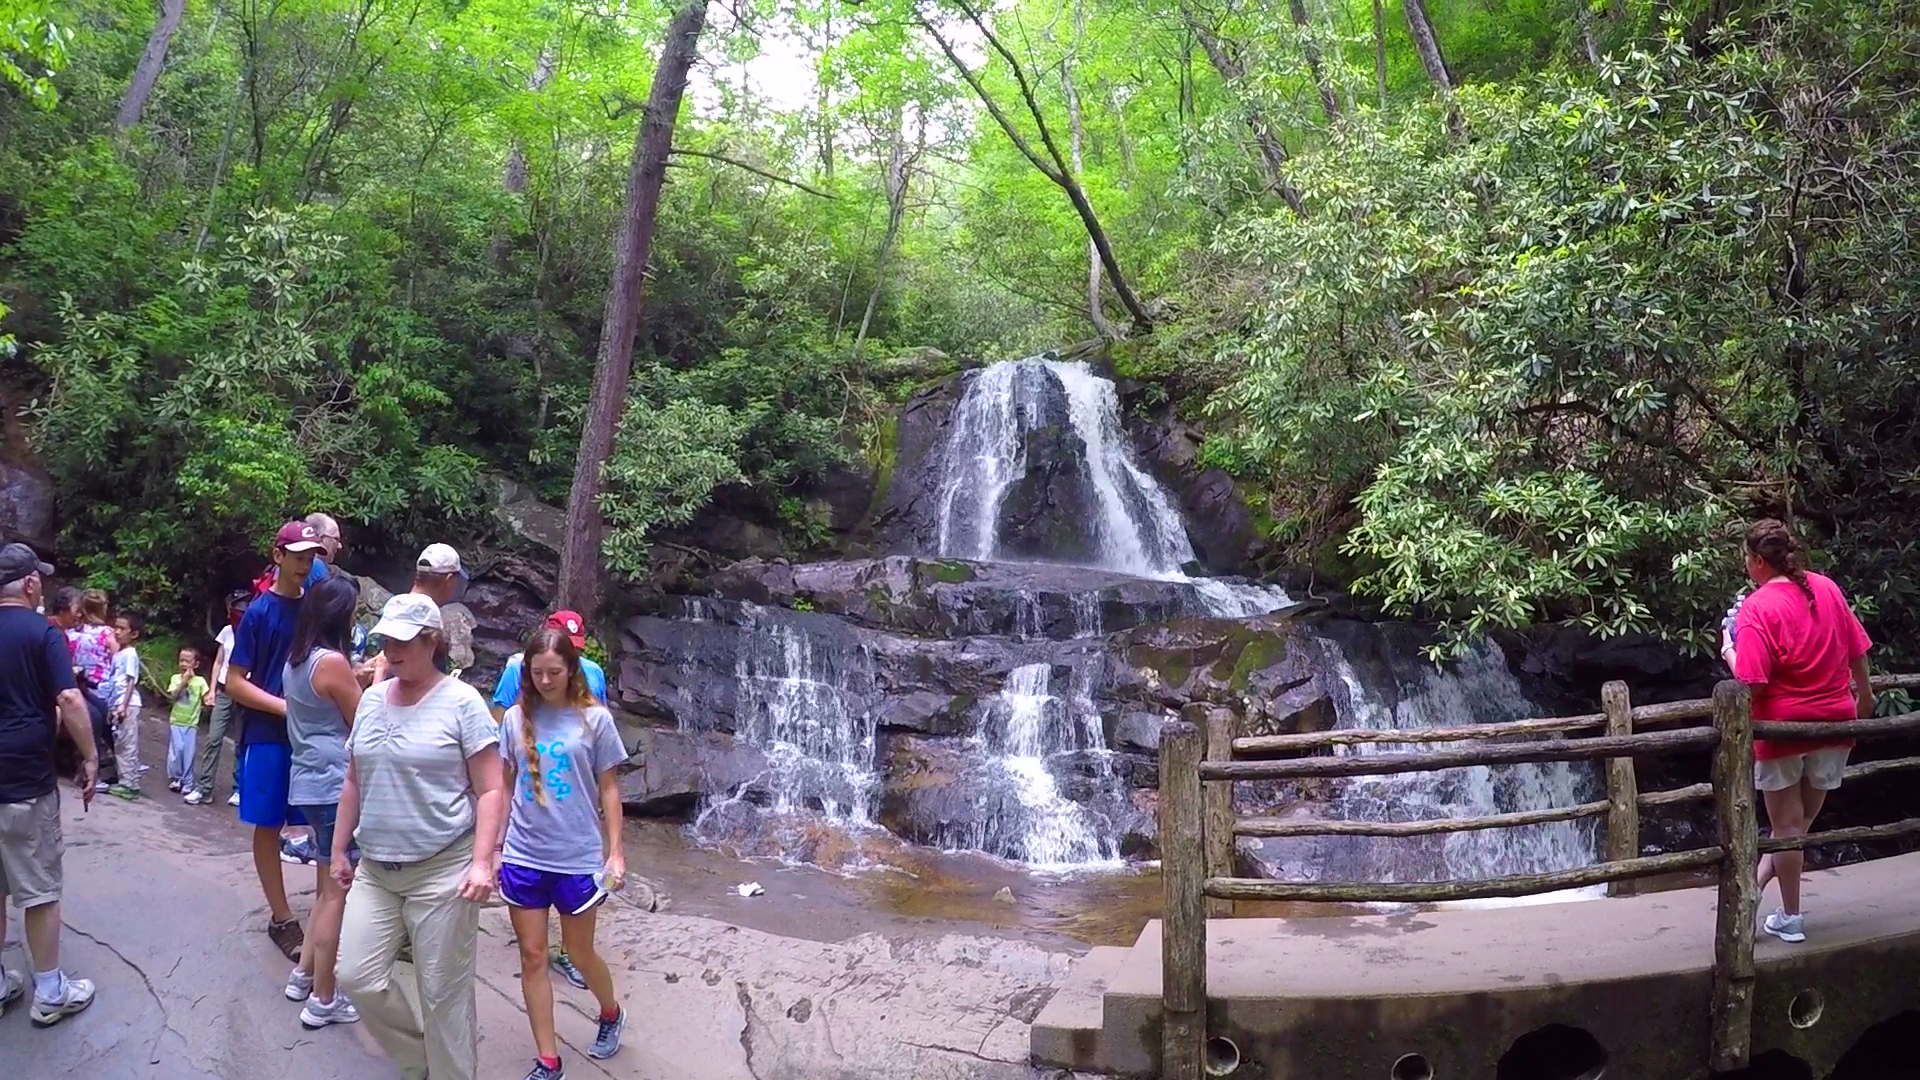 With more than 375,000 visitors in 2020 alone, the laurel falls trail is one of the most popular hikes in the smokies. 5 Smoky Mountain Trails That Are Perfect For Family Hikesthe Official Pigeon Forge Chamber Of Commerce